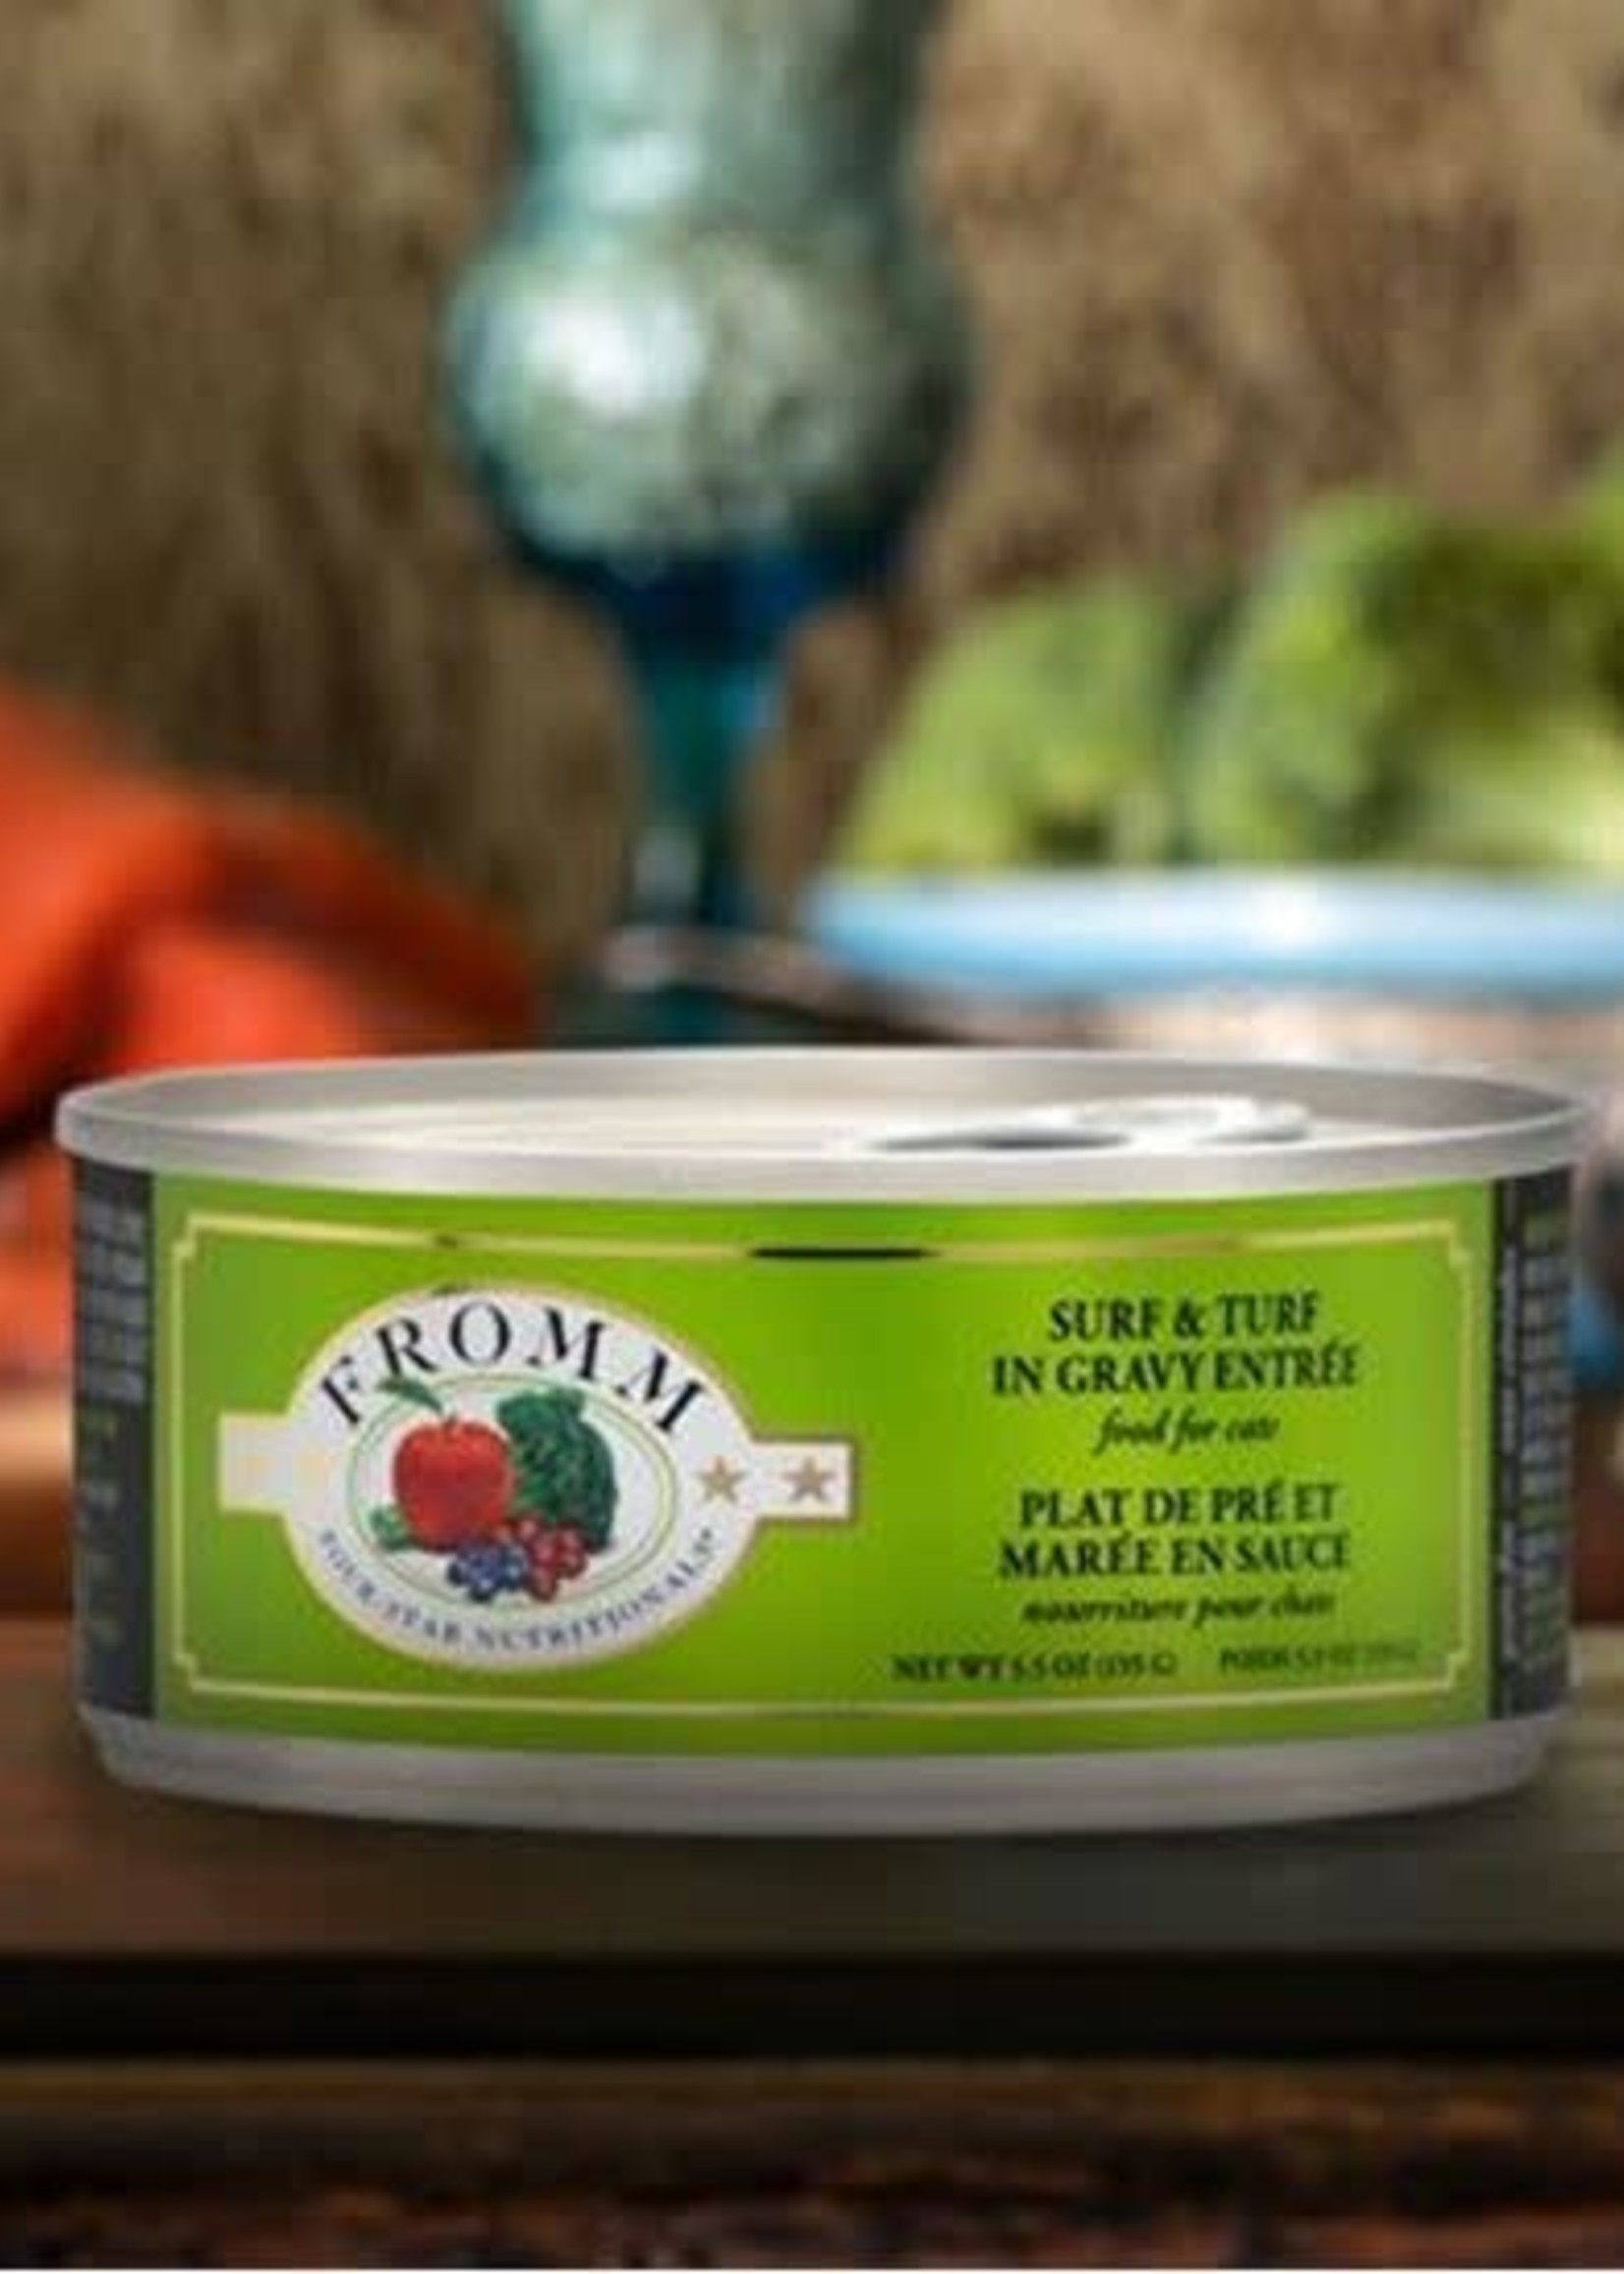 Fromm Fromm Four-Star Surf & Turf in Gravy Entrée 5.5oz